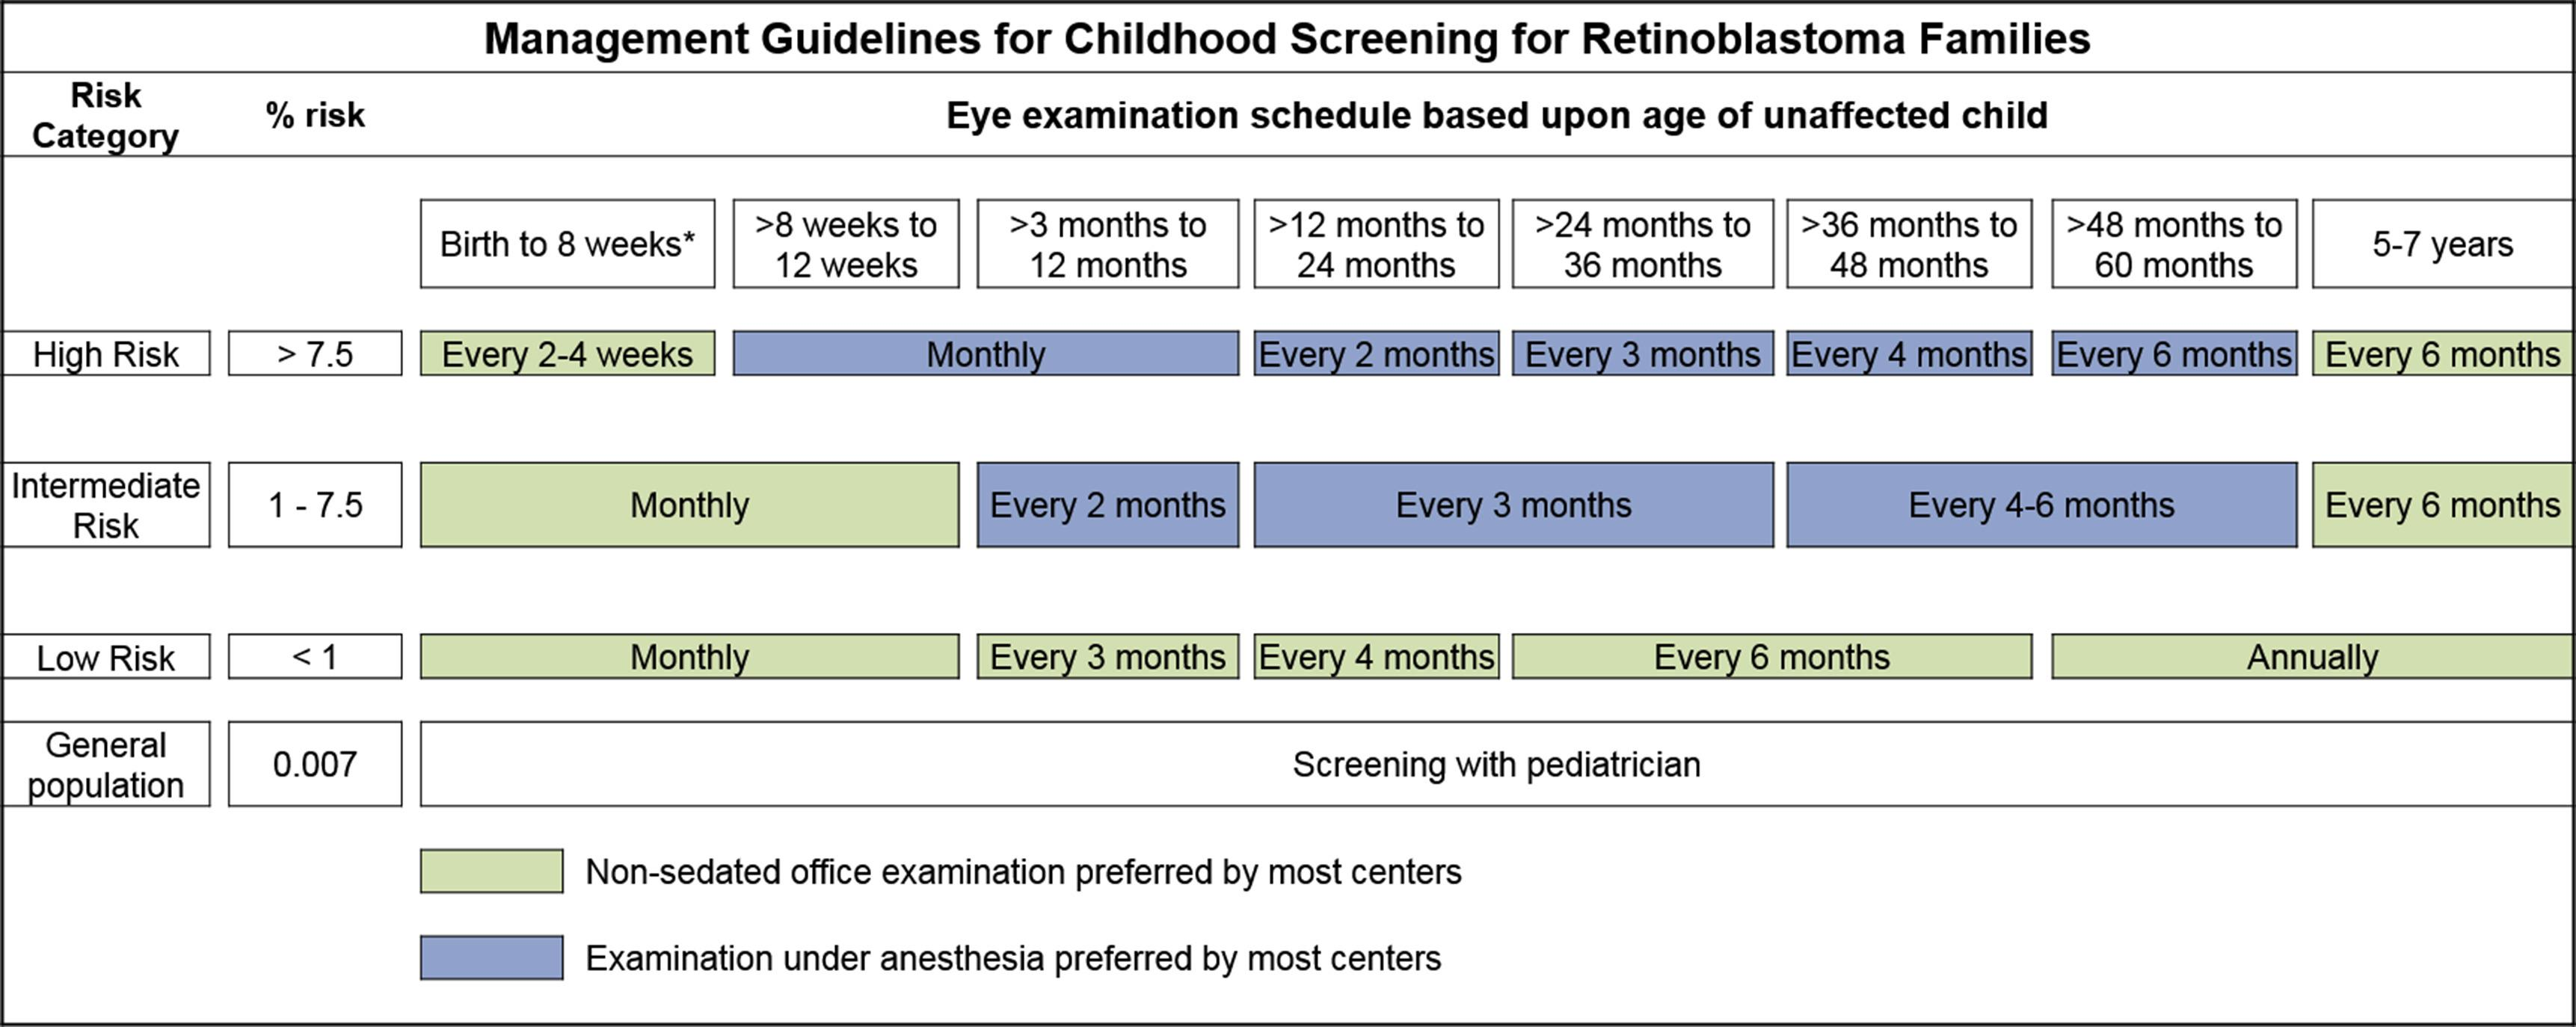 Table showing management guidelines for childhood screening for retinoblastoma.